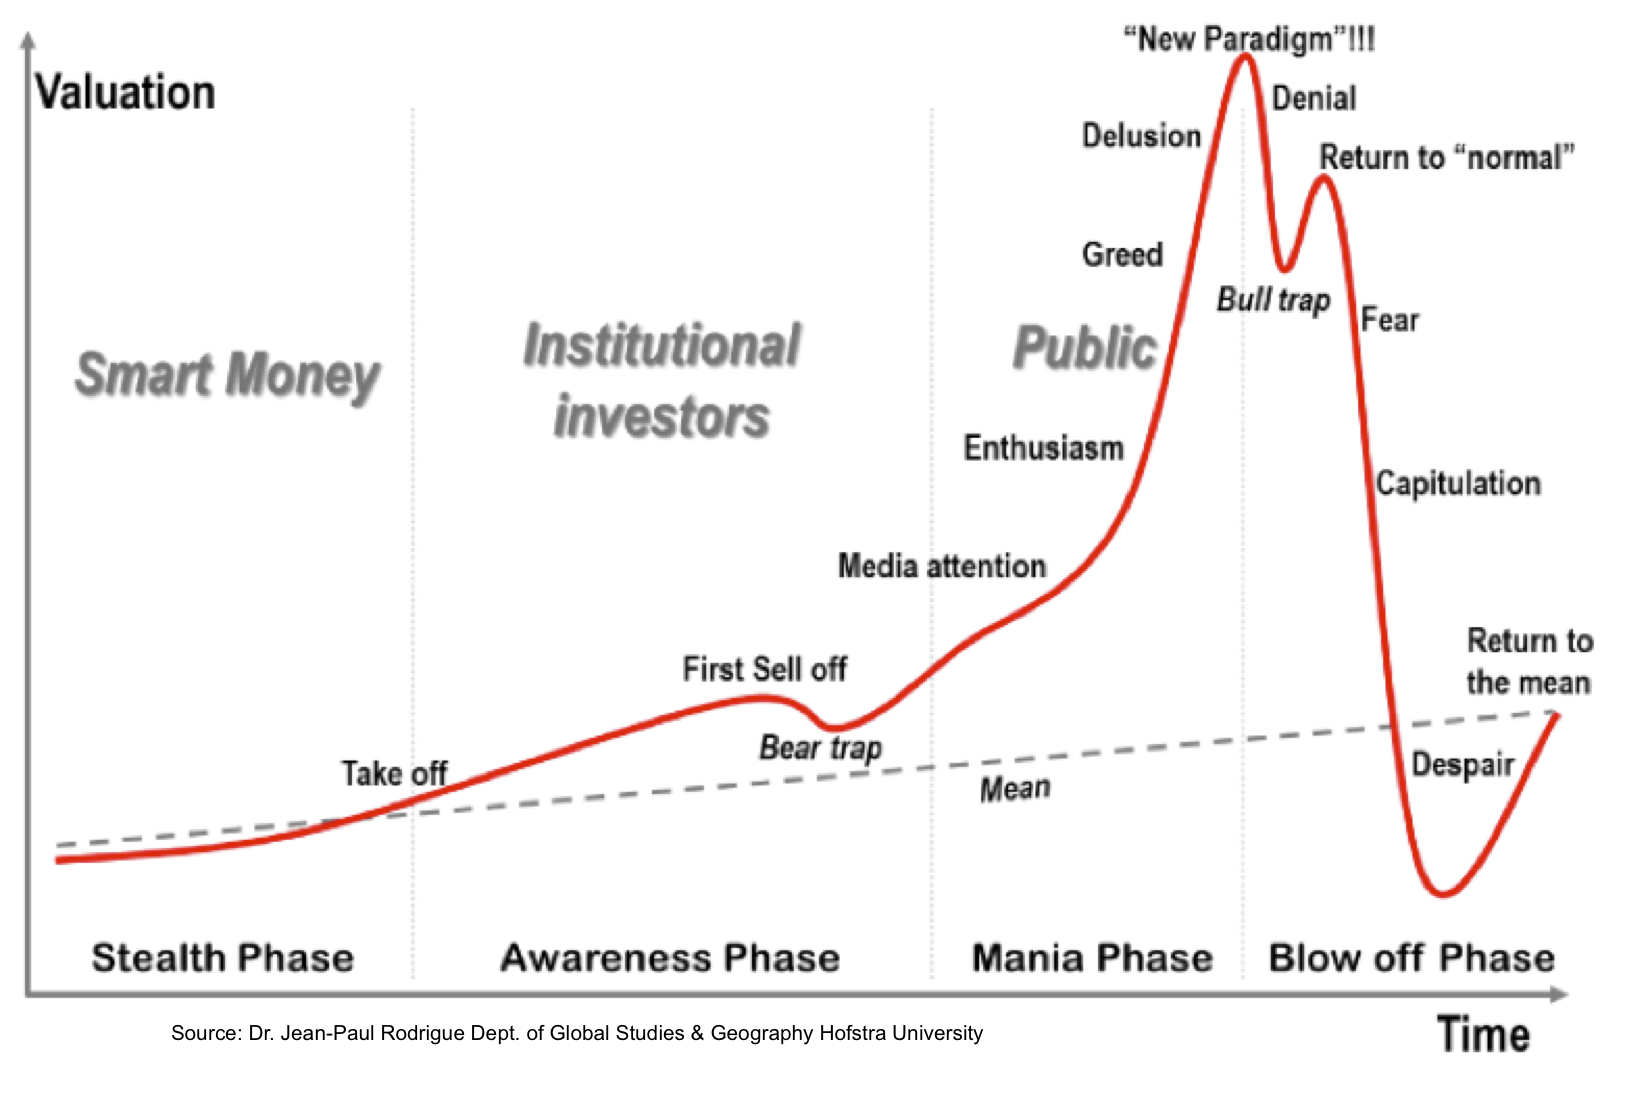 Phases of an asset price bubble